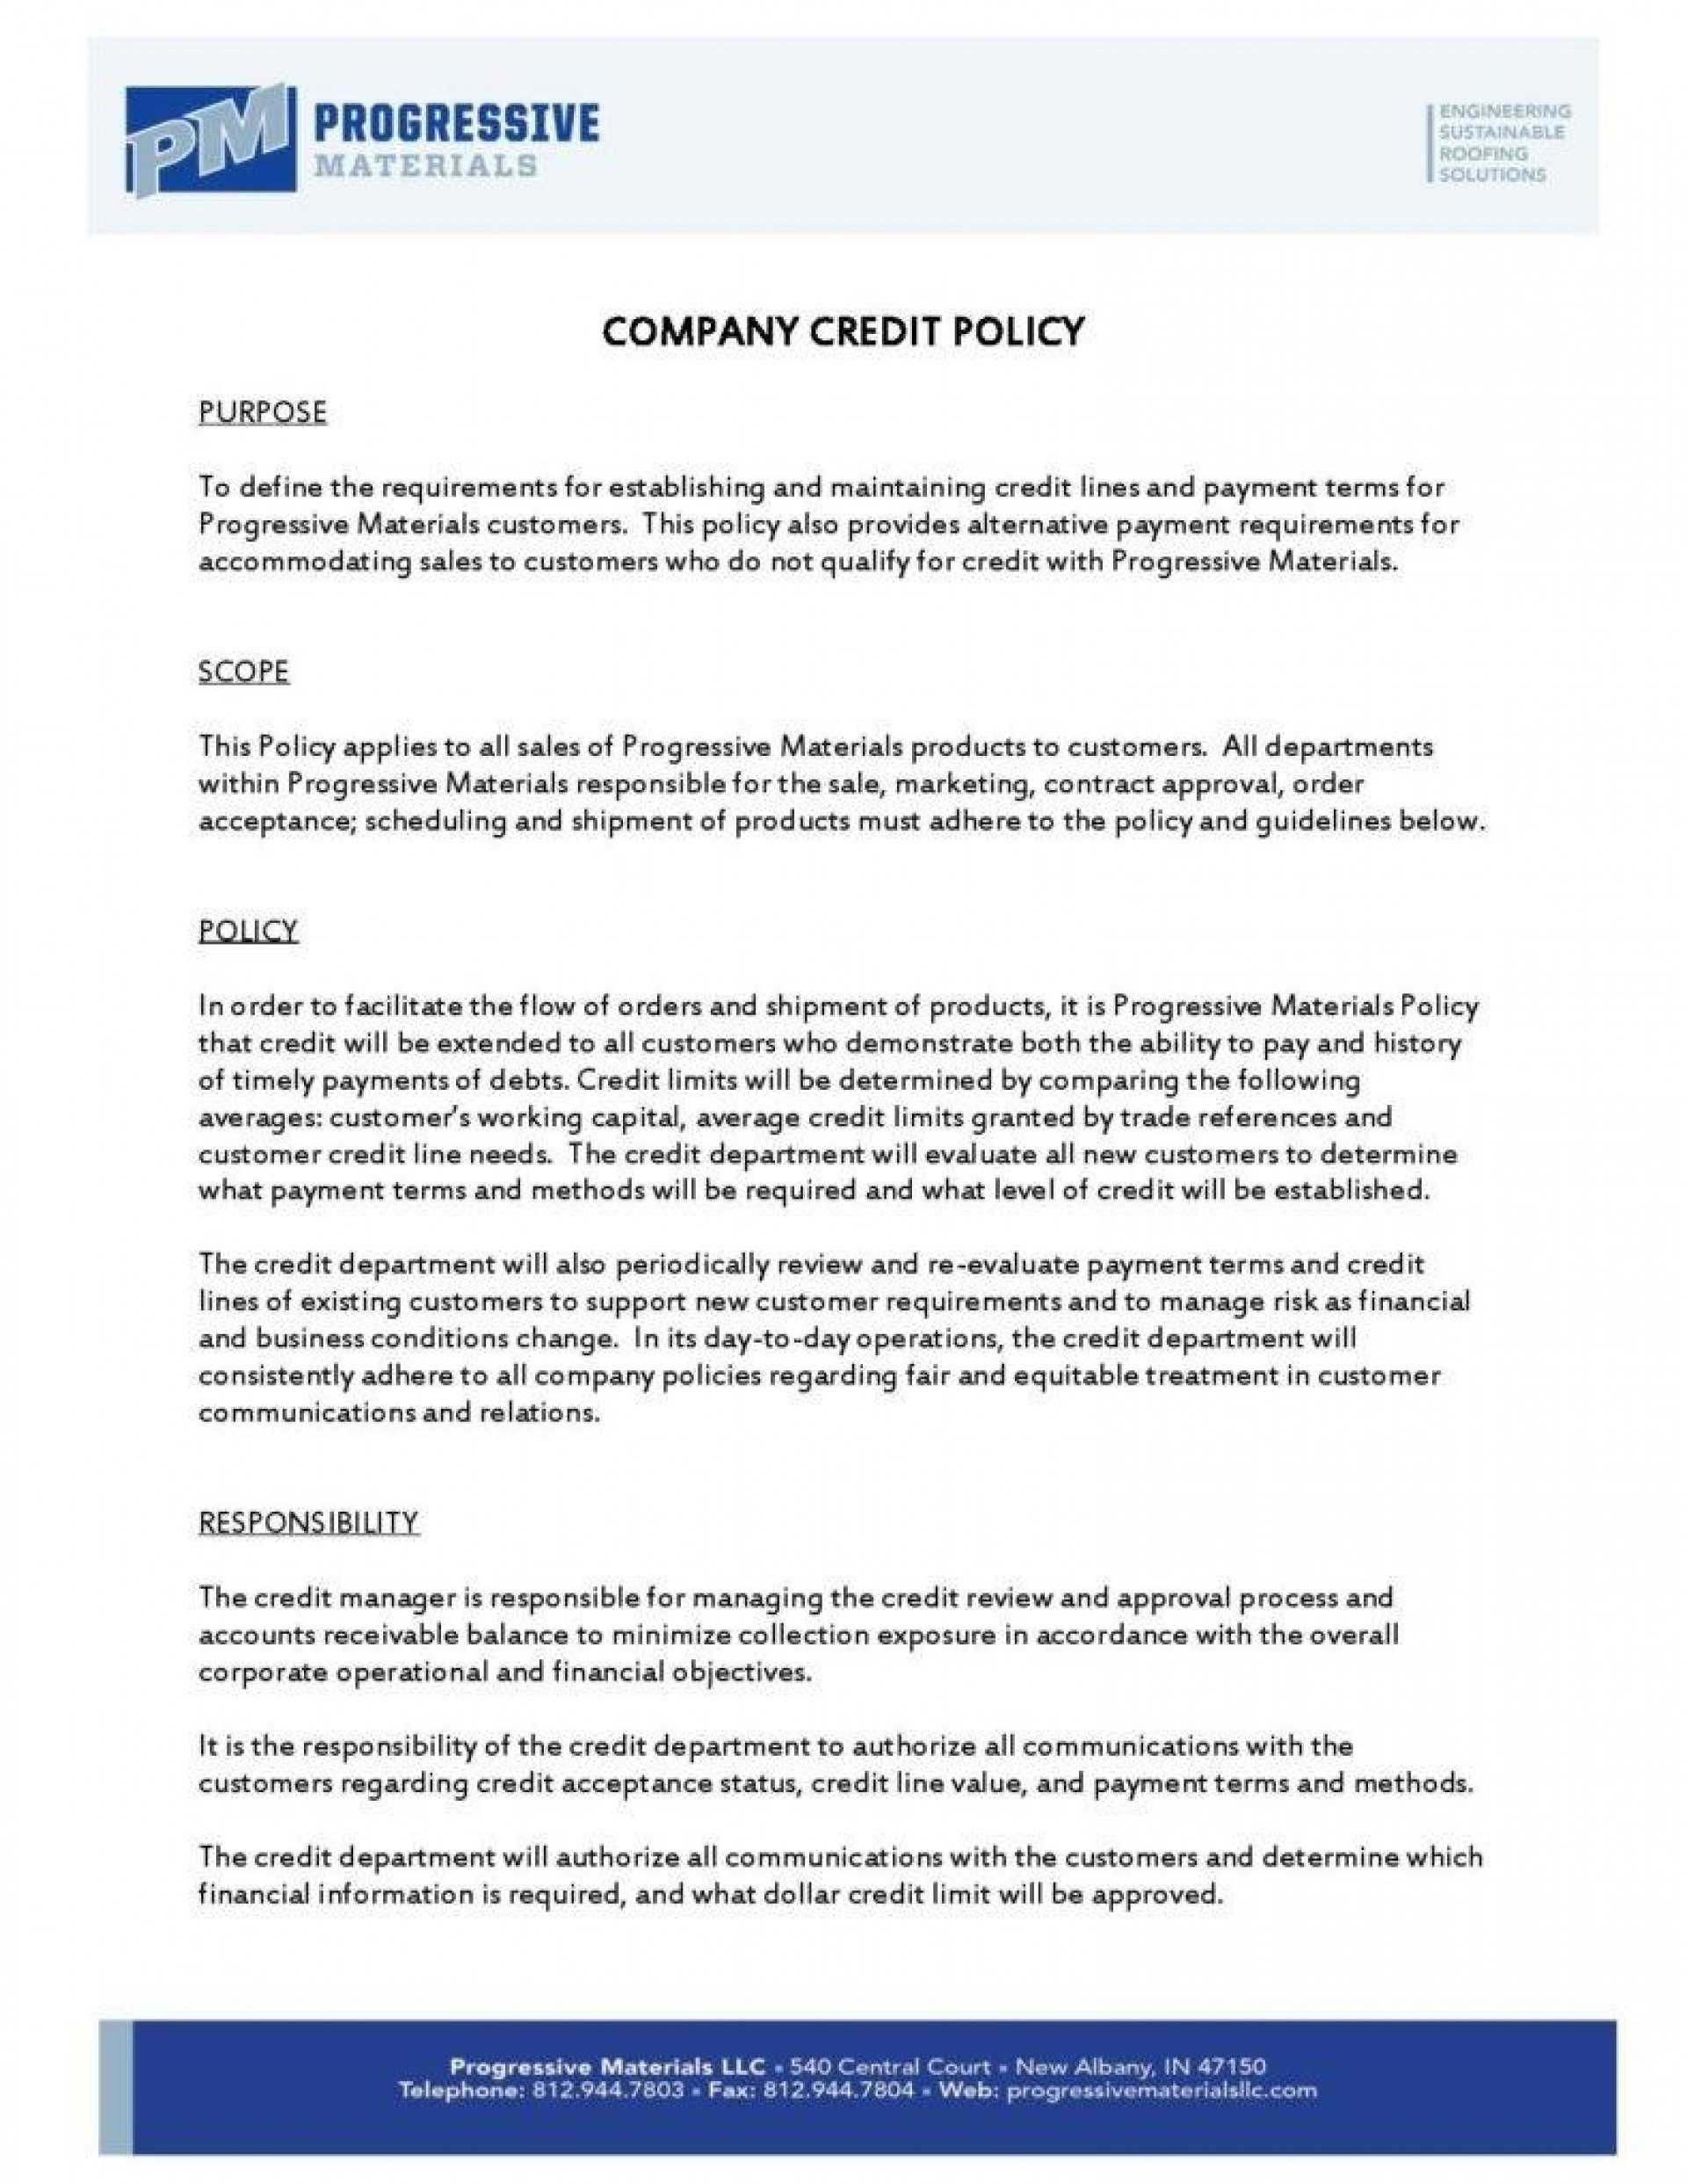 002 Template Ideas Dress Code Policy Company Credit Page With Company Credit Card Policy Template